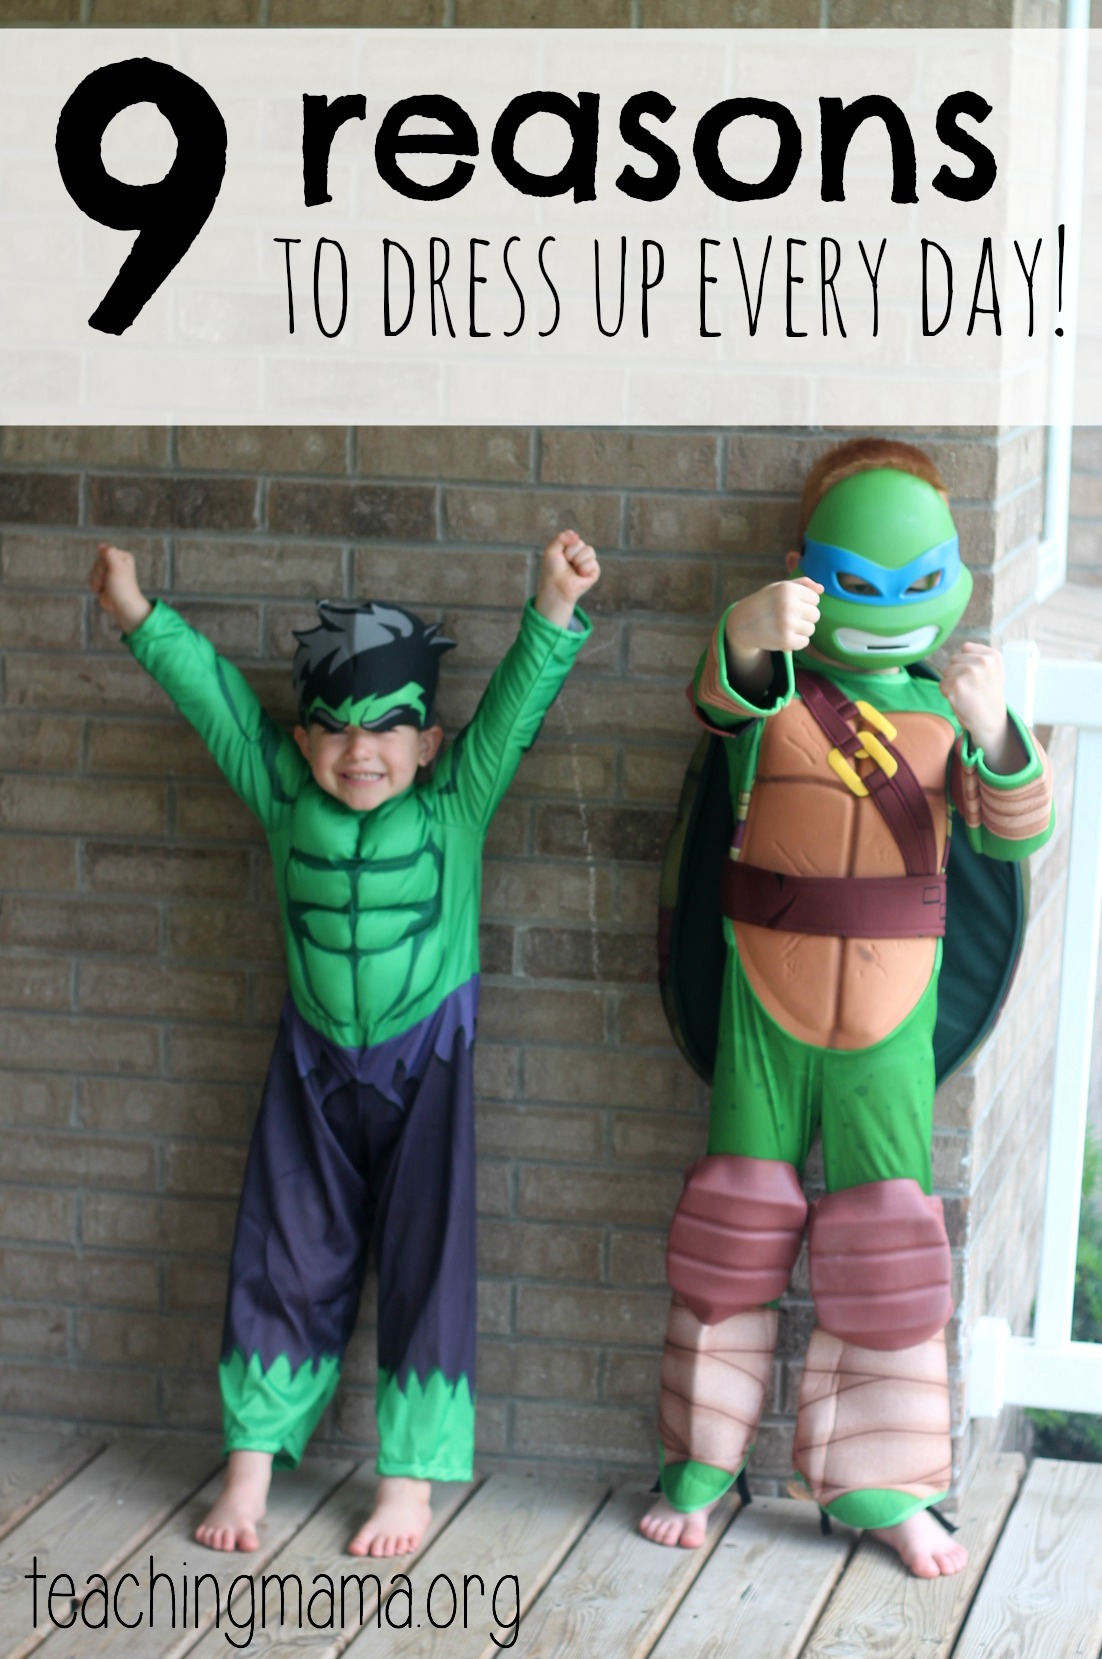 9 Reasons To Dress Up Every Day